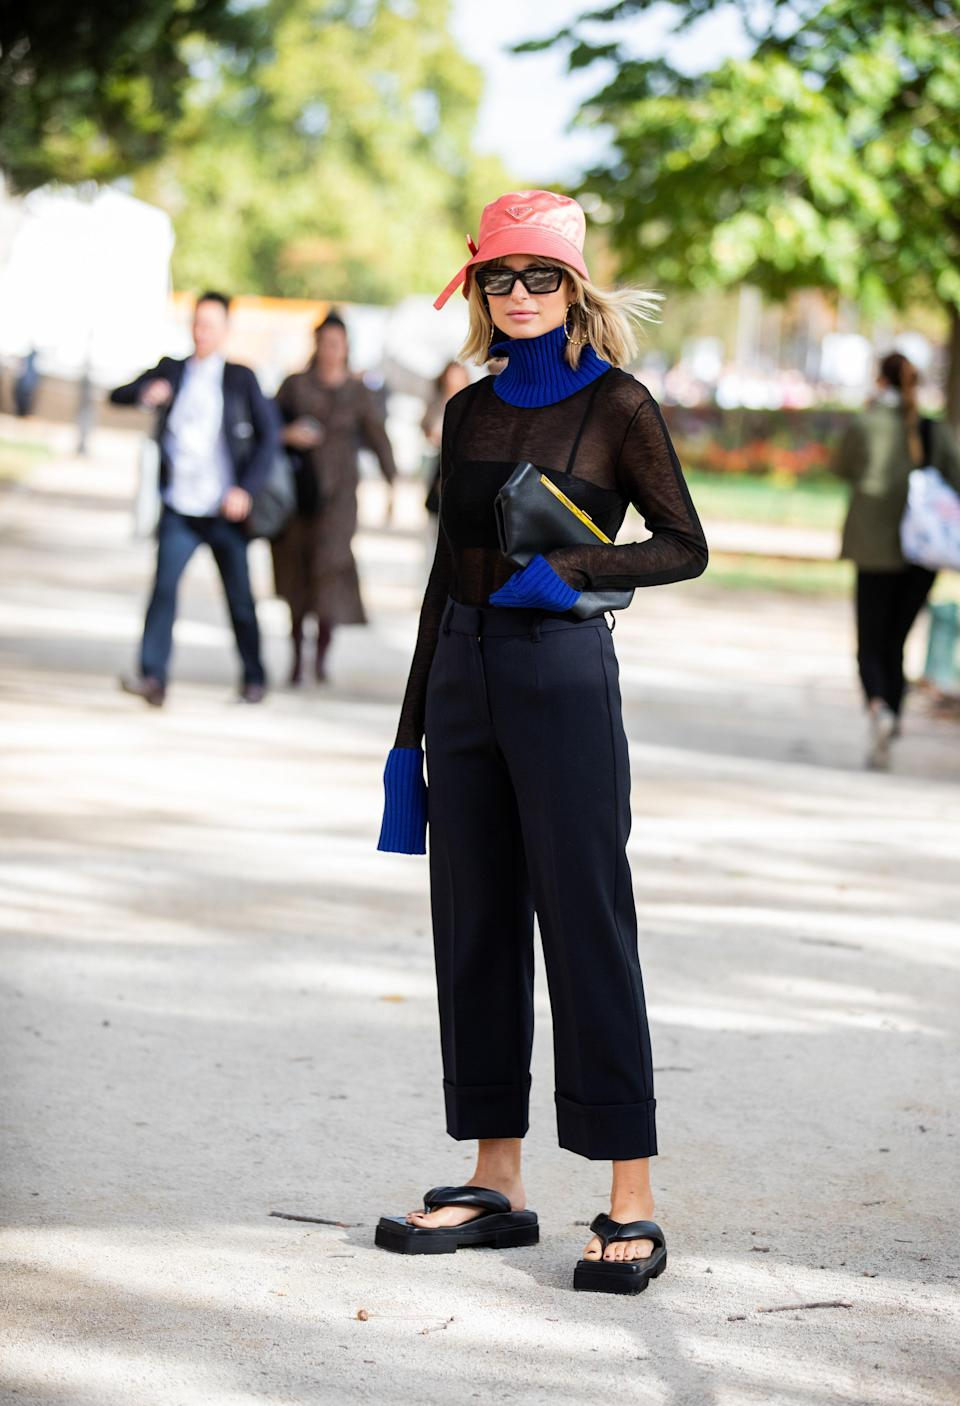 "<a href=""https://www.glamour.com/gallery/best-katie-holmes-fall-outfits?mbid=synd_yahoo_rss"" rel=""nofollow noopener"" target=""_blank"" data-ylk=""slk:Katie Holmes"" class=""link rapid-noclick-resp"">Katie Holmes</a>, Kendall Jenner, Hailey Bieber, and Rihanna have all gotten behind the notorious thong sandal—favoring leather kitten heel styles the most. The throwback shoe looks surprisingly chic when worn with jeans, dresses, or your next beach <em>lewk.</em>"